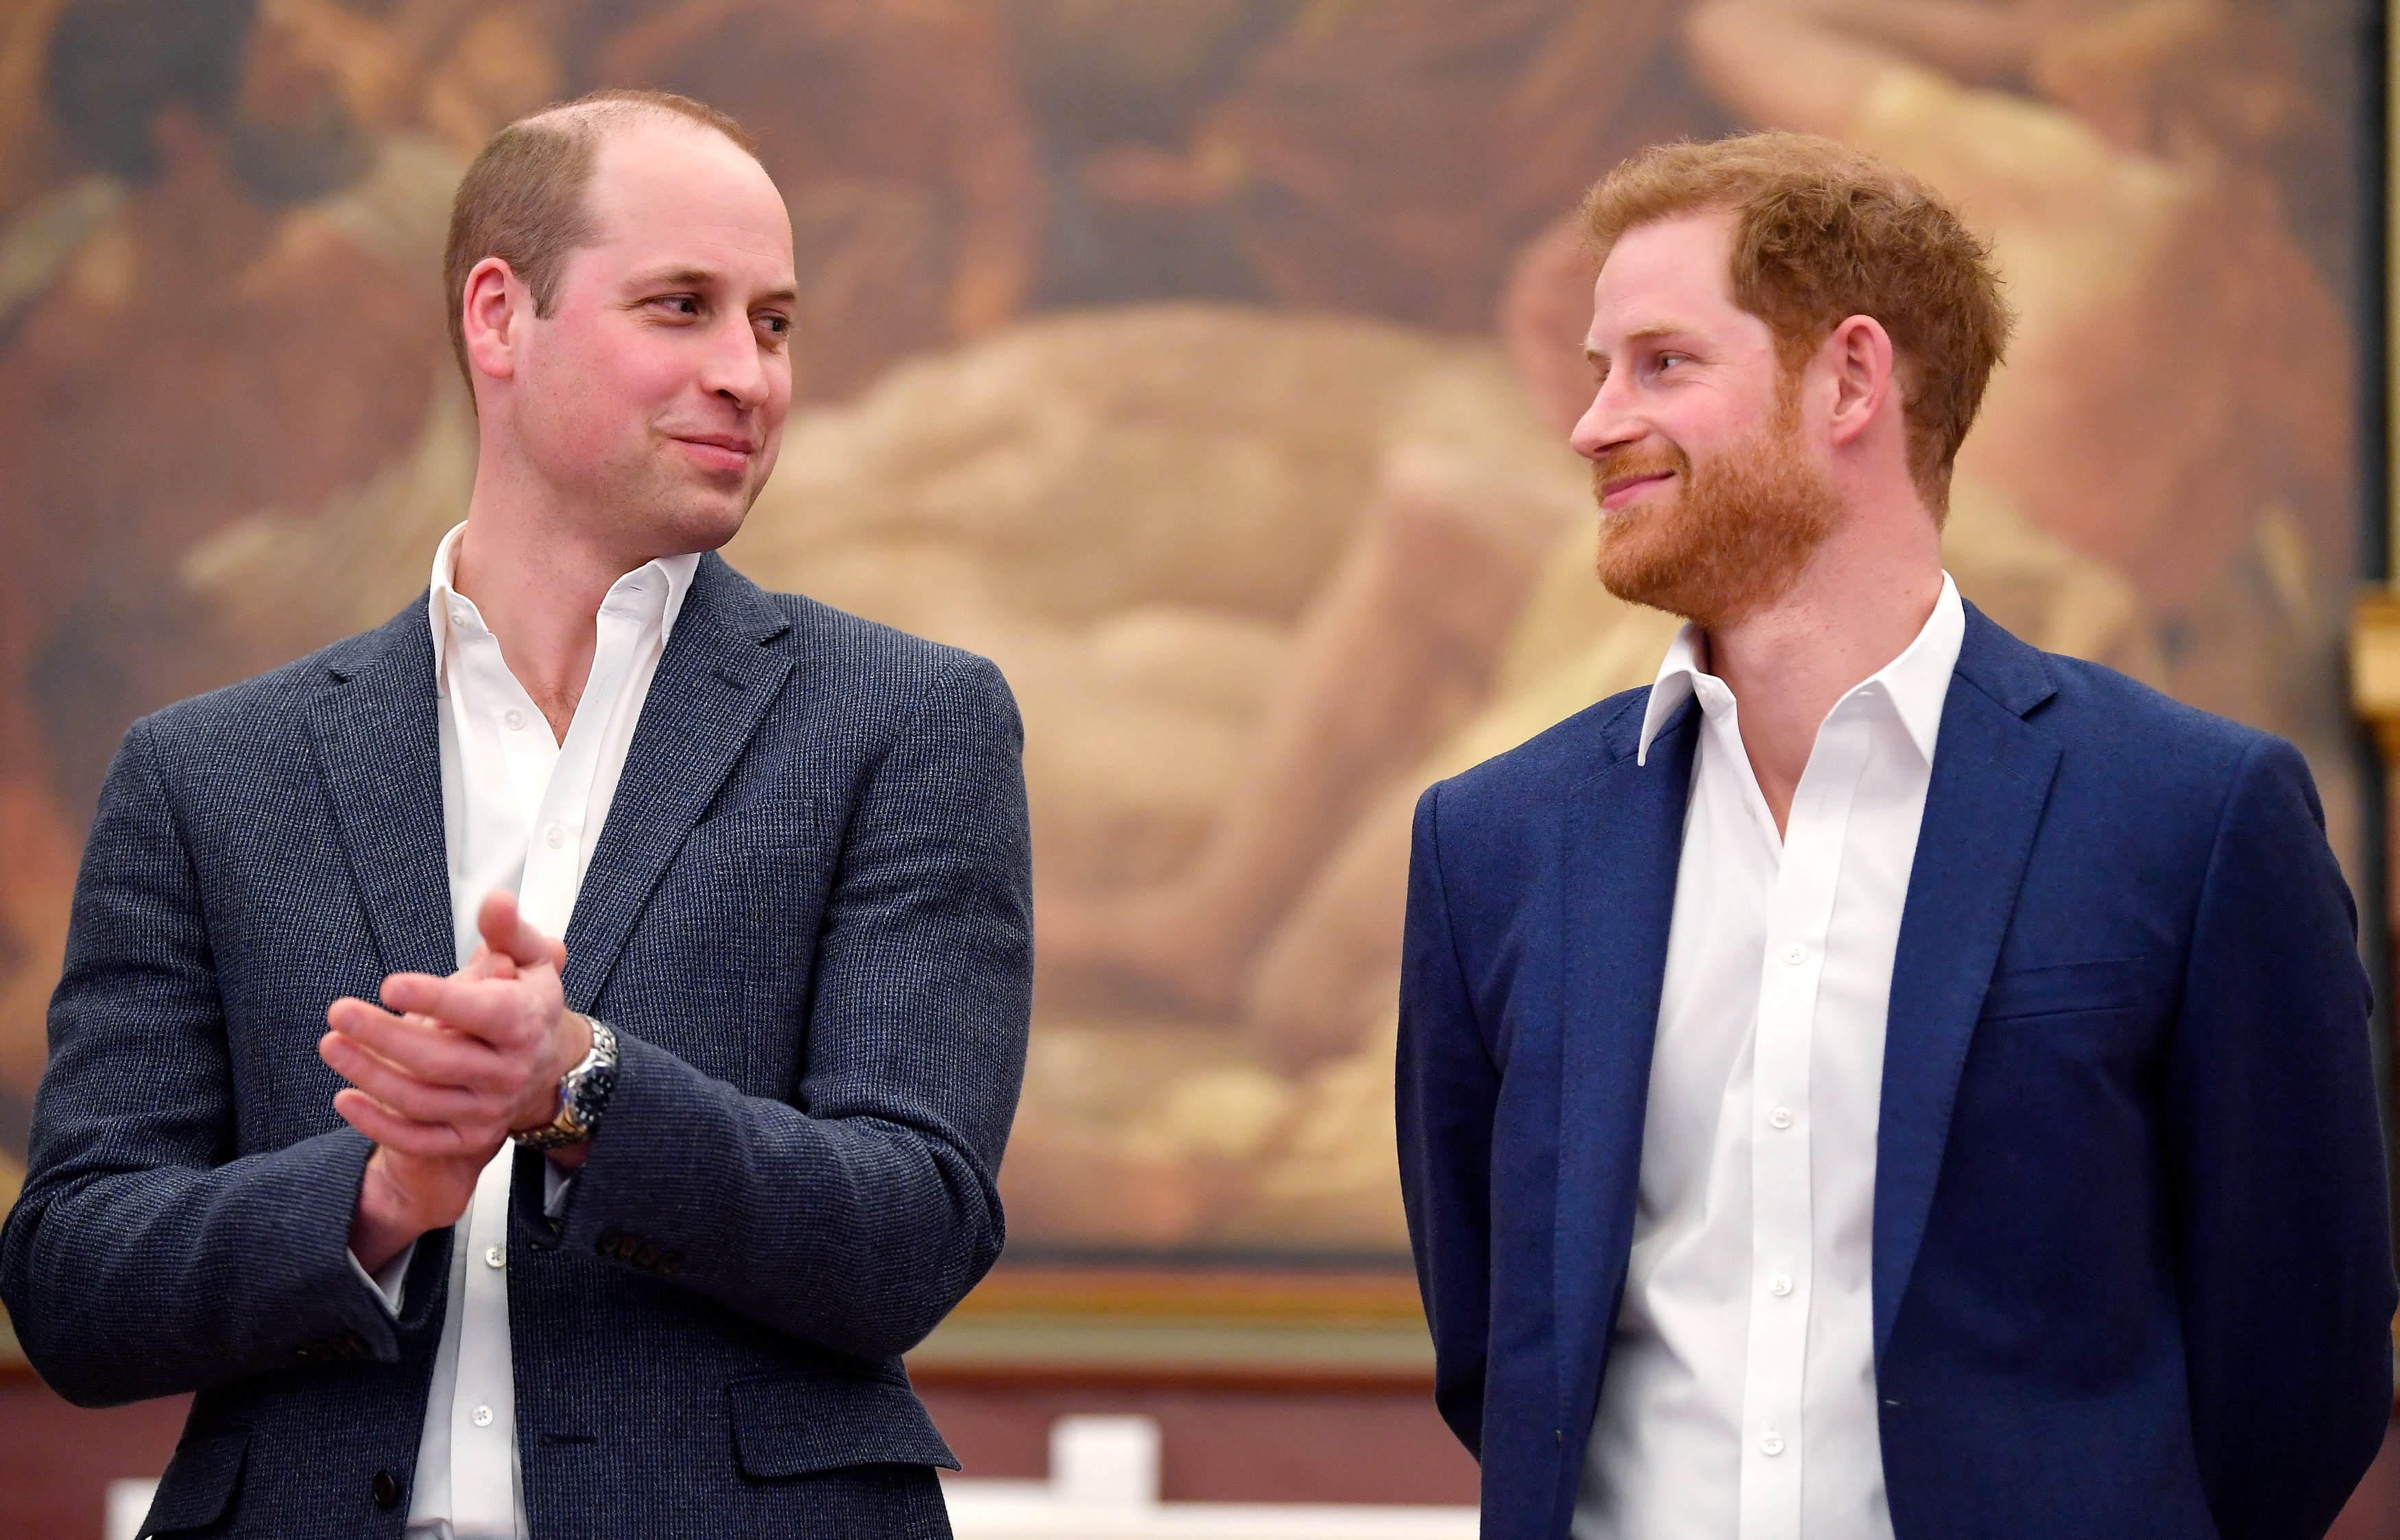 principe-harry-principe-william.jpg